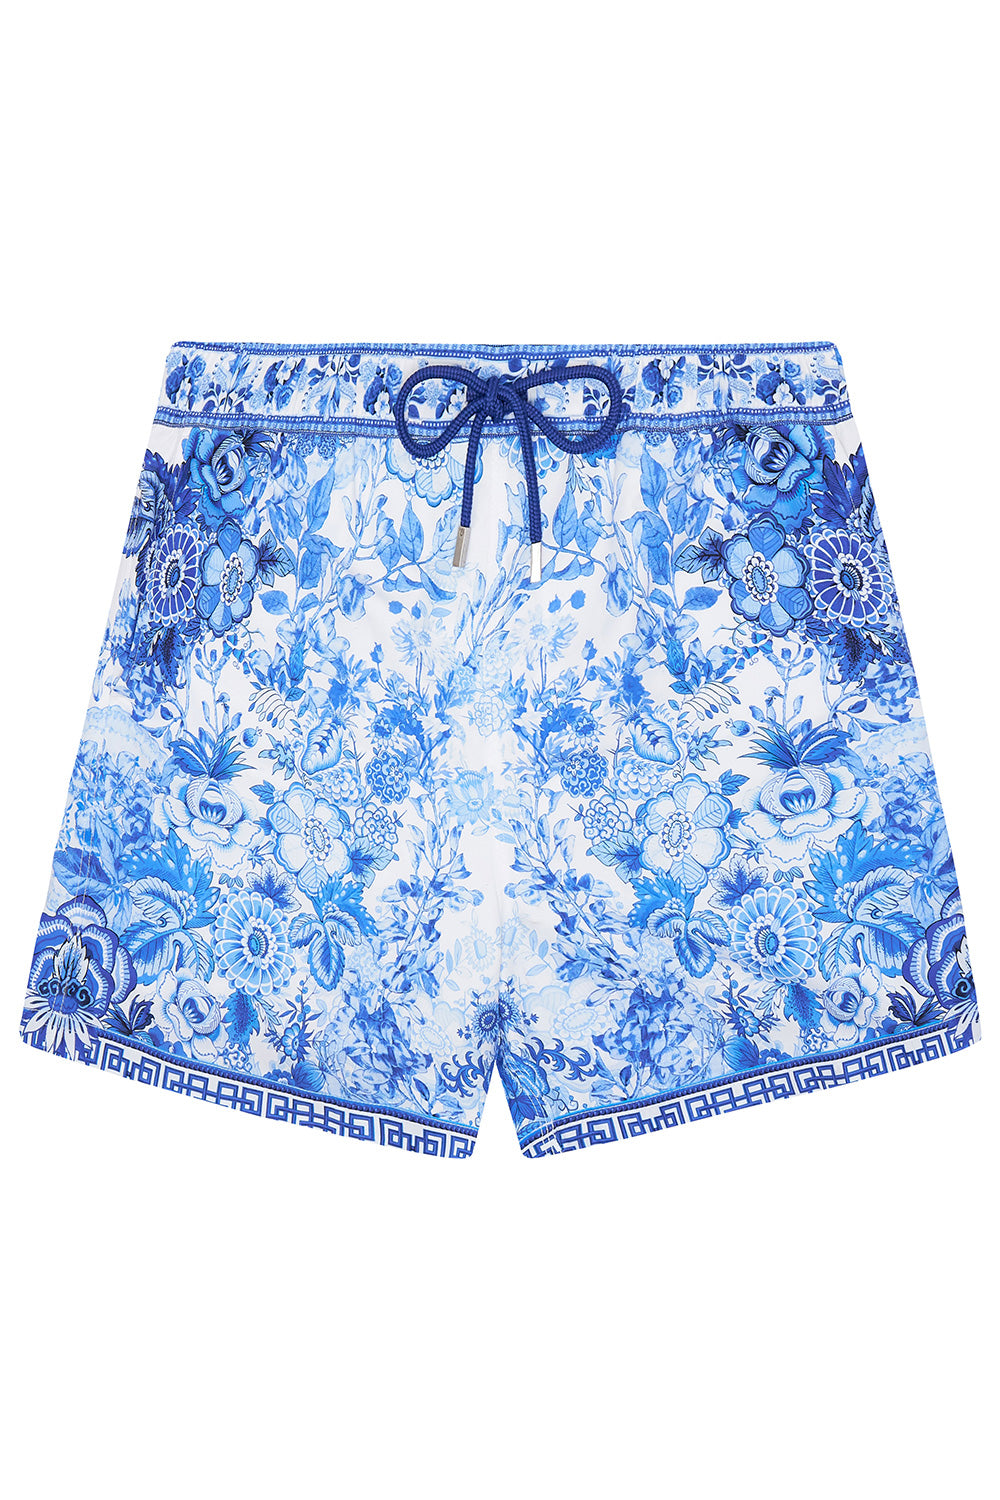 ELASTIC WAIST BOARDSHORT HIGH TEA